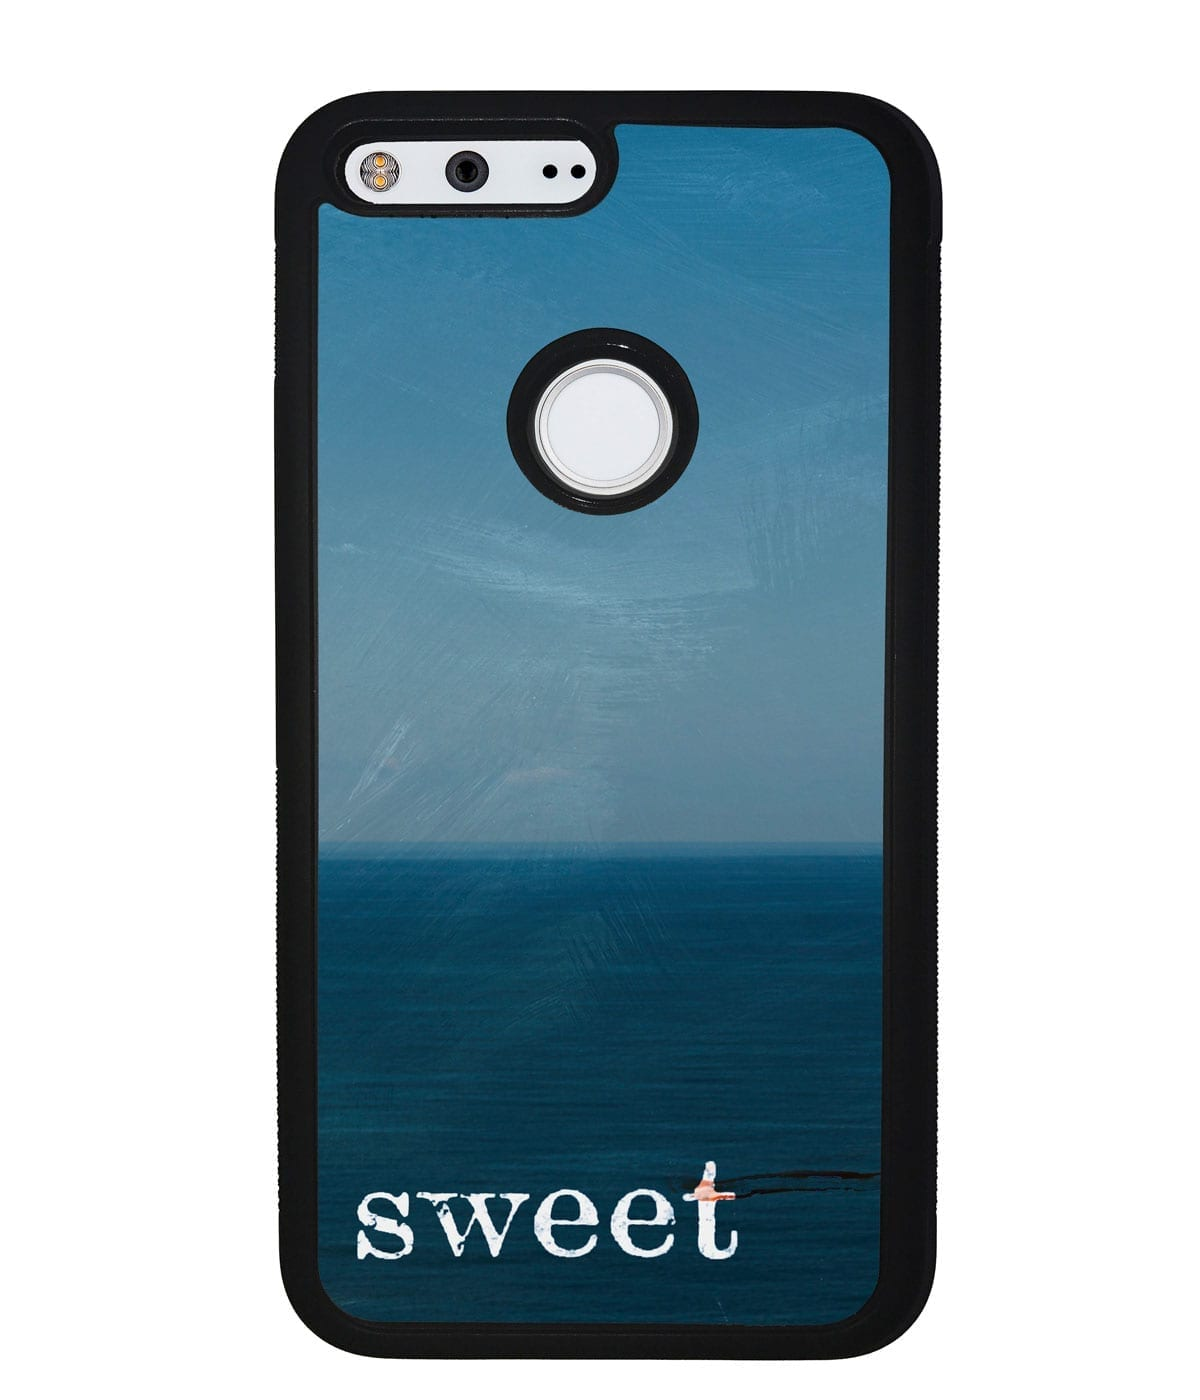 Sweet Phone Case (Google)